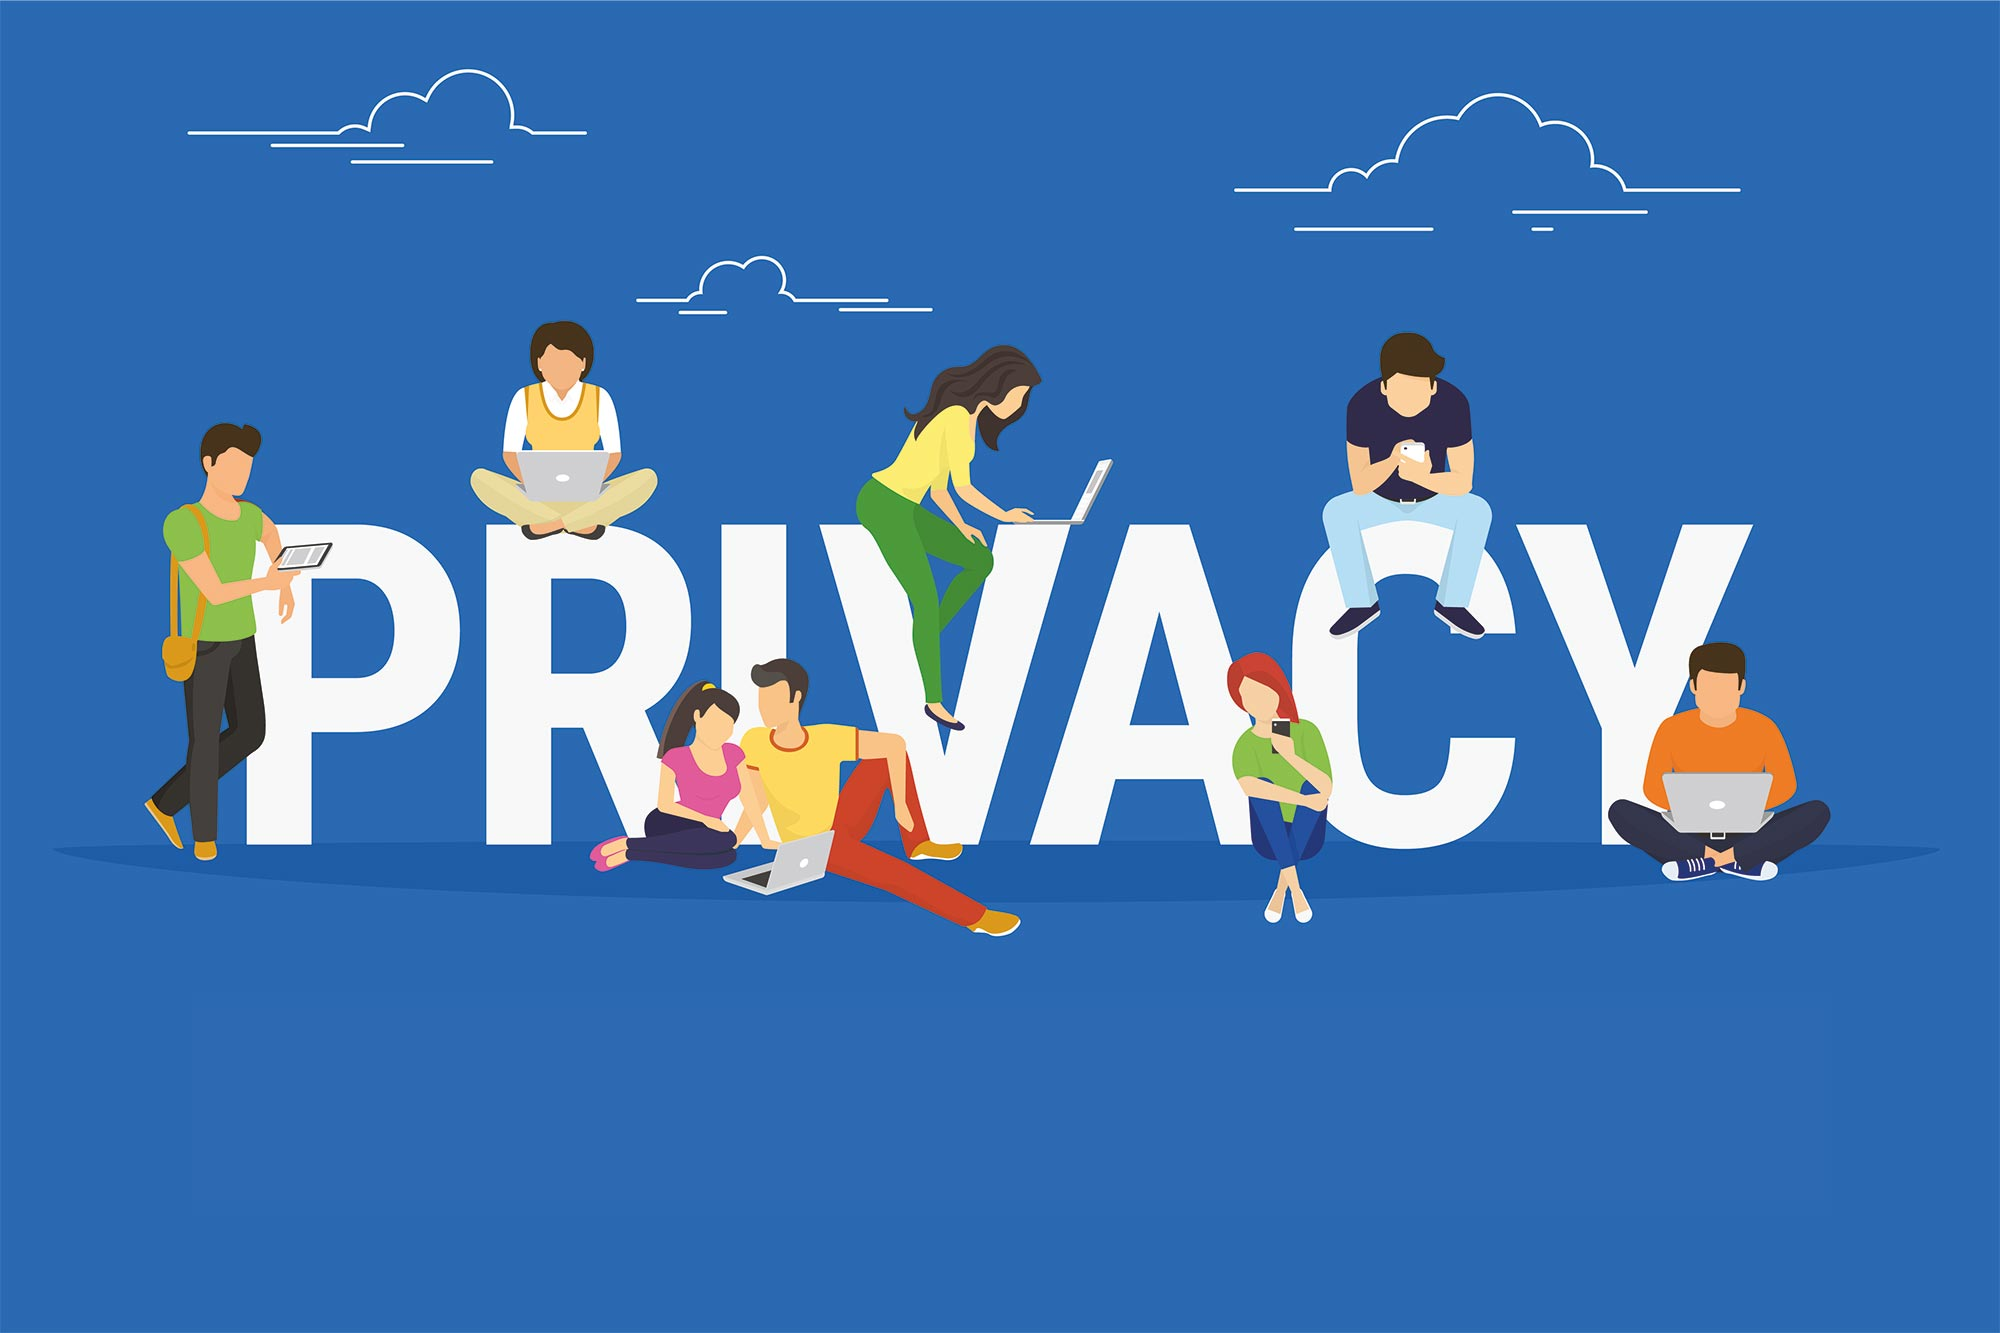 consumer-privacy-concept-illustration.jpg